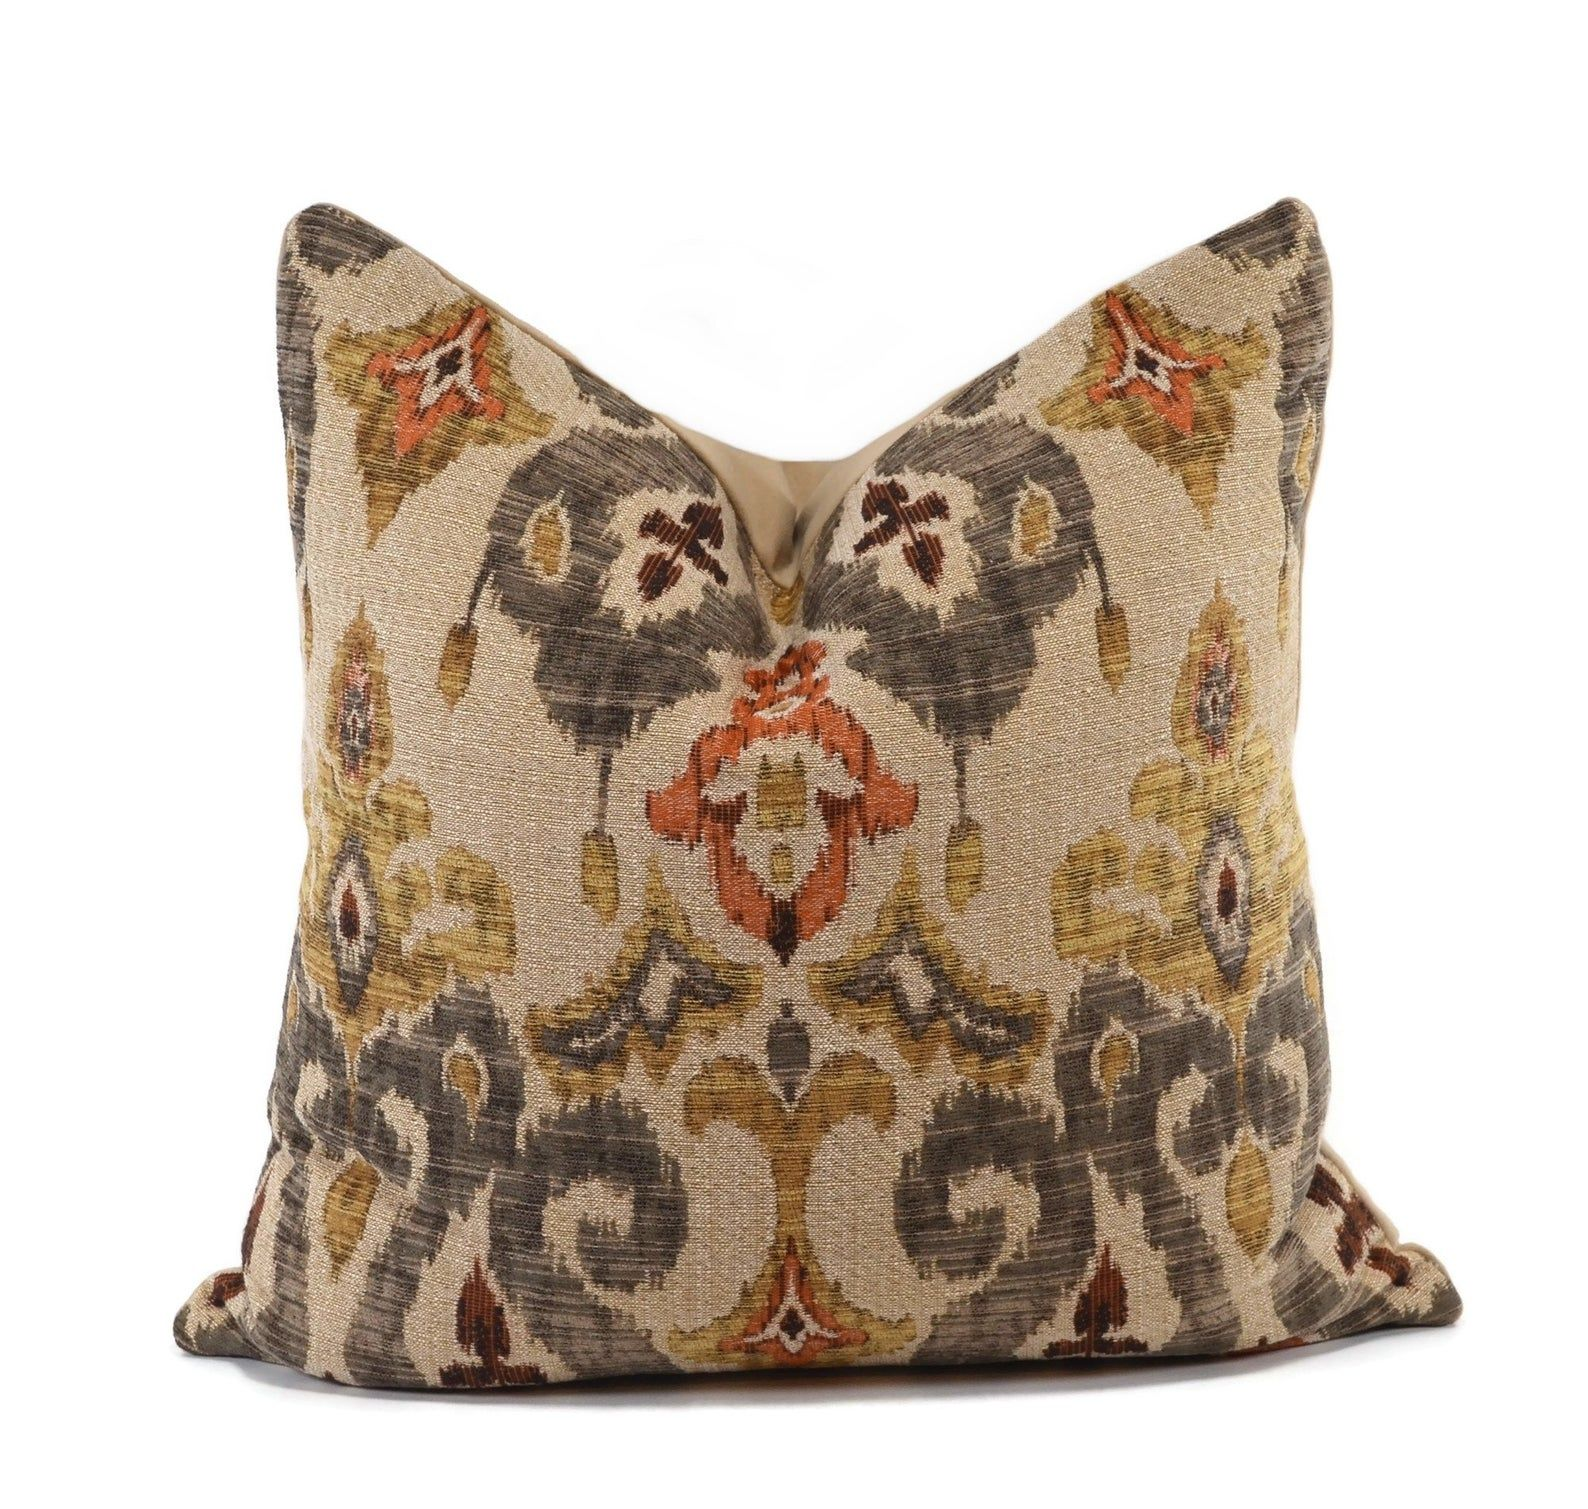 Boho Throw Pillows, Turkish Chenille Throw Pillow Cover, Gray, Gold and Orange Ikat Throw Pillow Cover, Moroccan Pillow Cover, 20x20